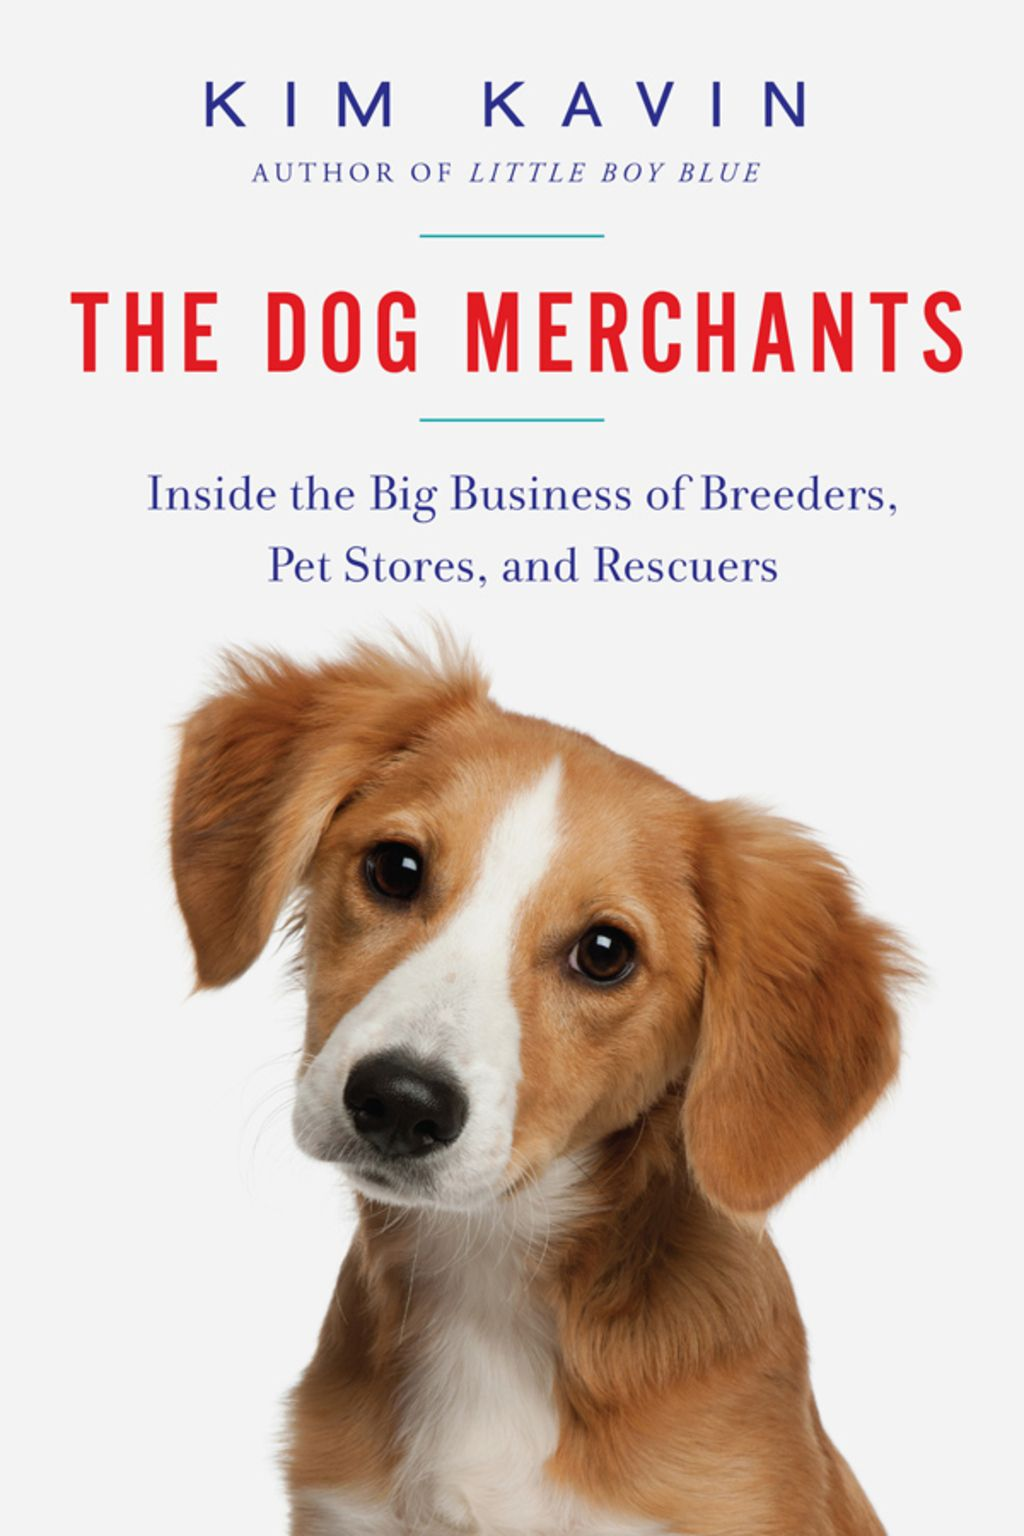 The Dog Merchants Inside The Big Business Of Breeders Pet Stores